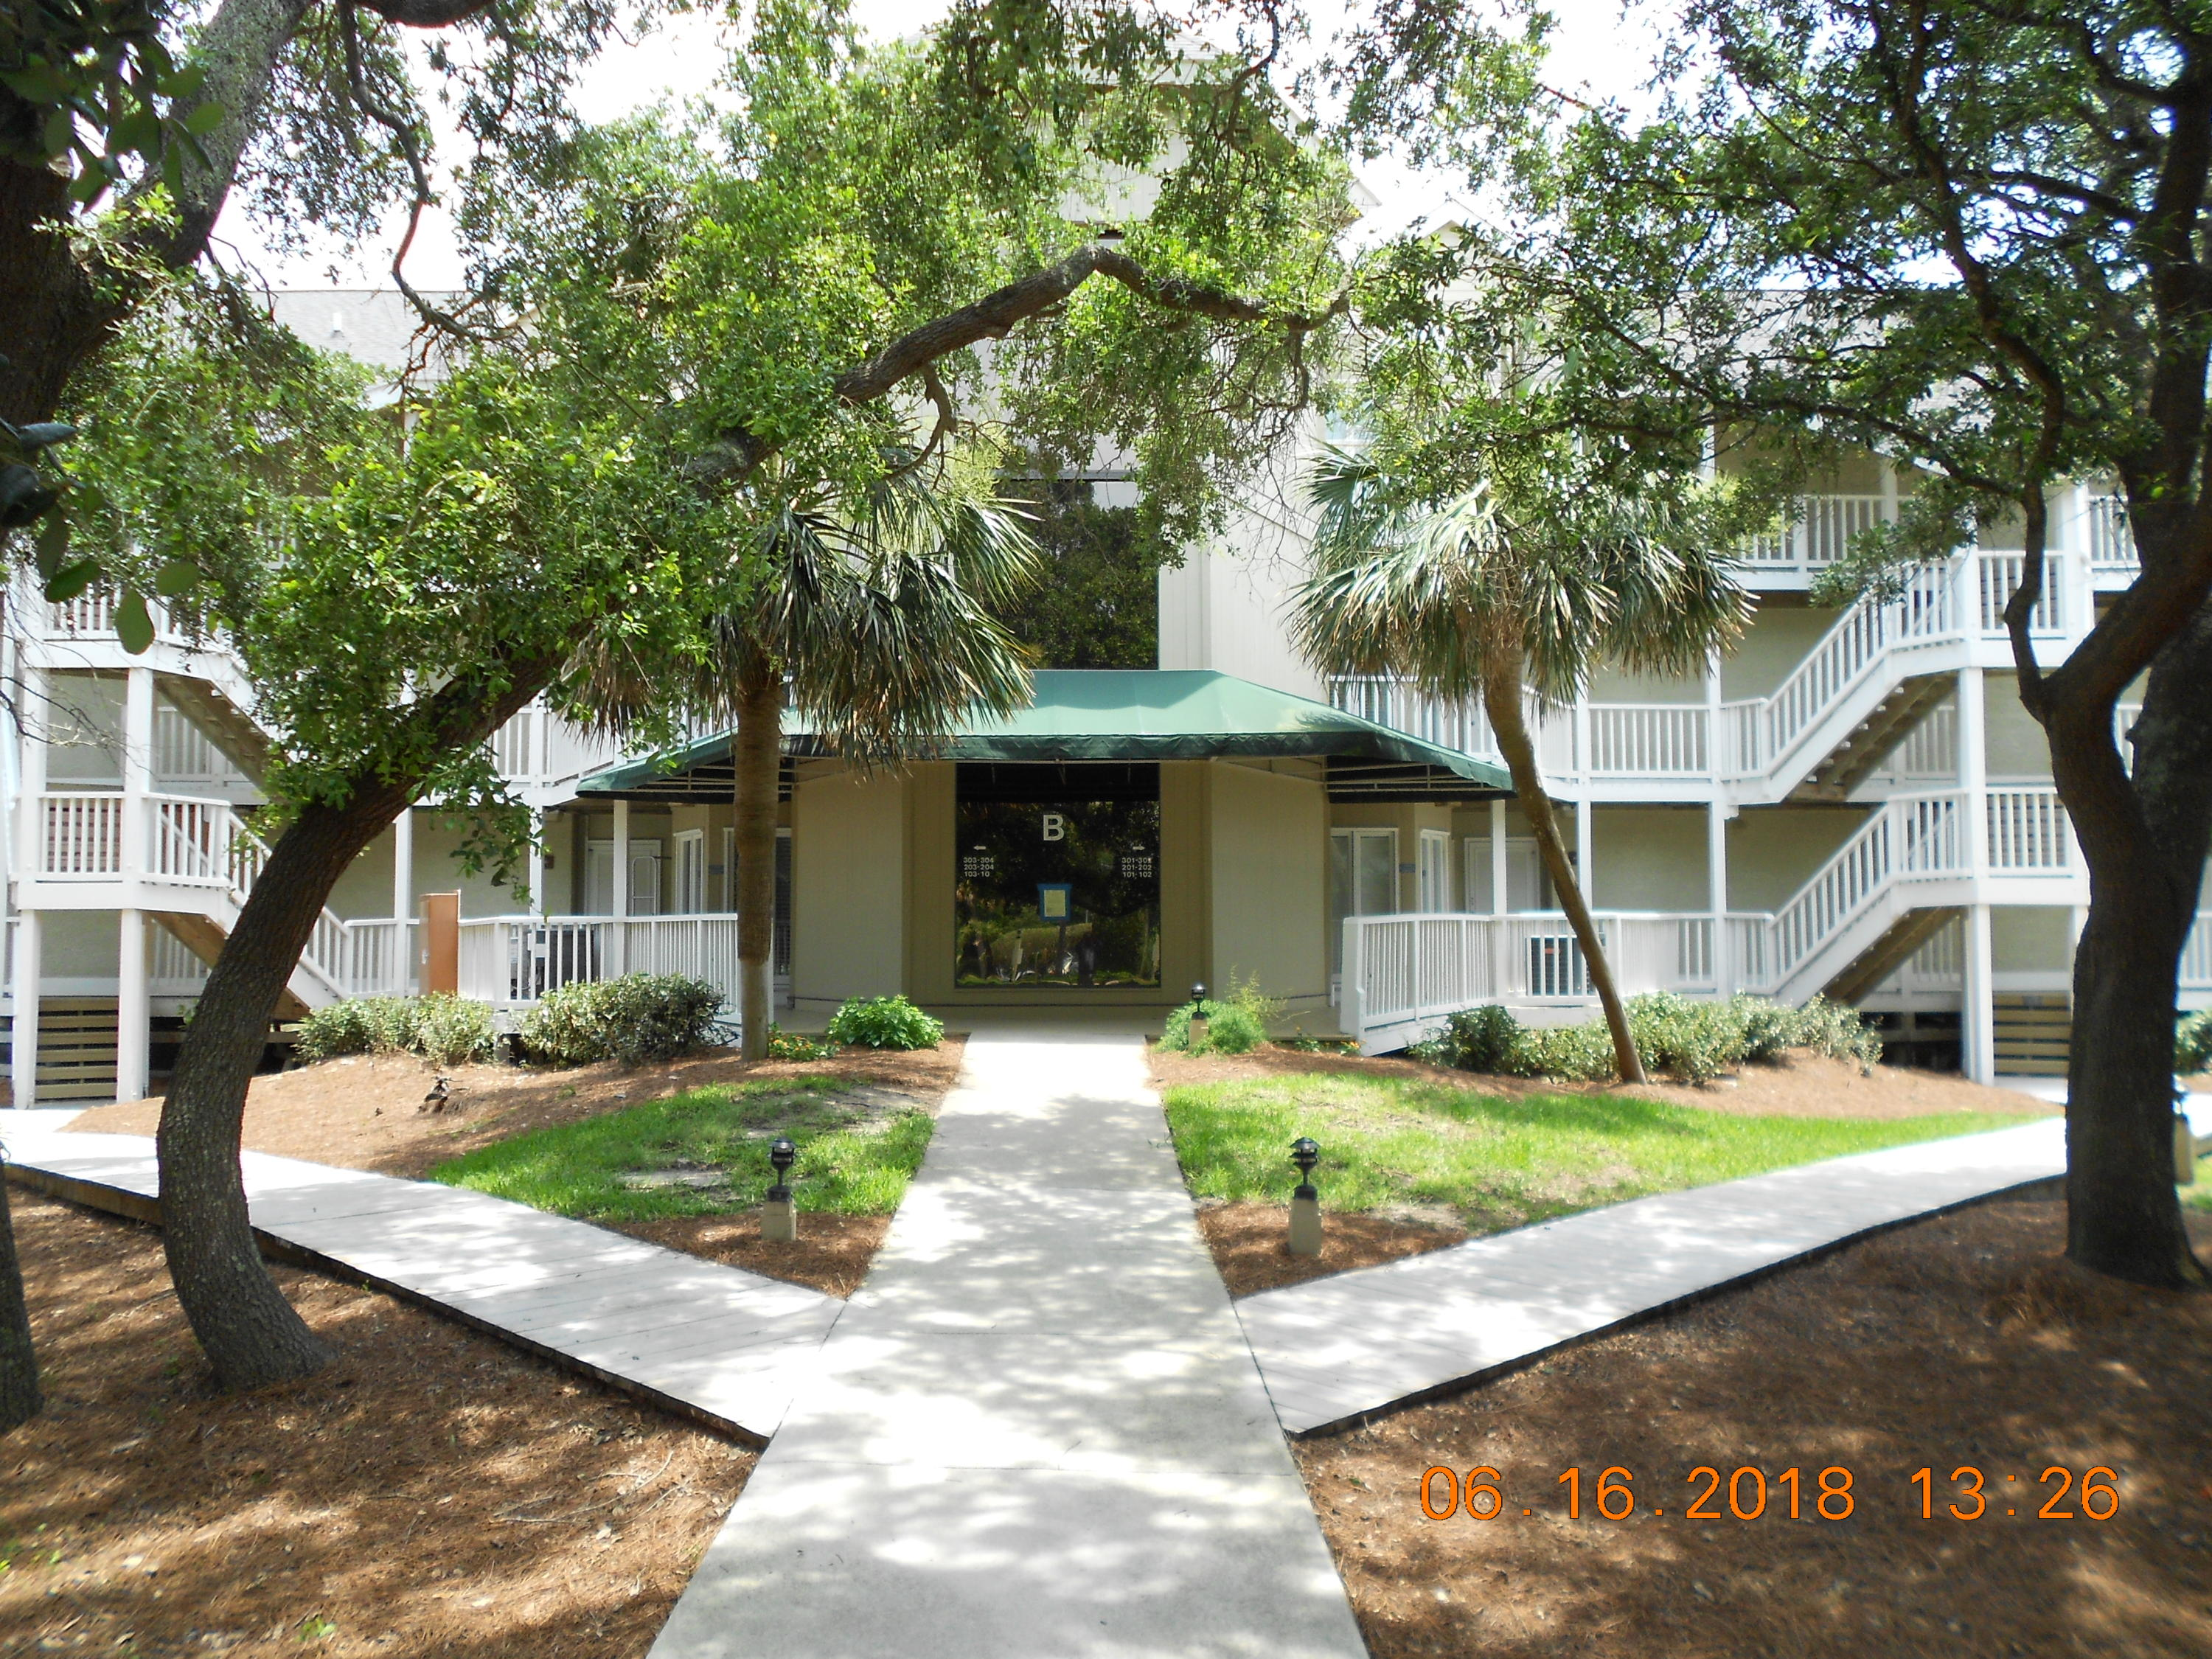 204 B Port O Call 1/8TH Isle Of Palms, SC 29451